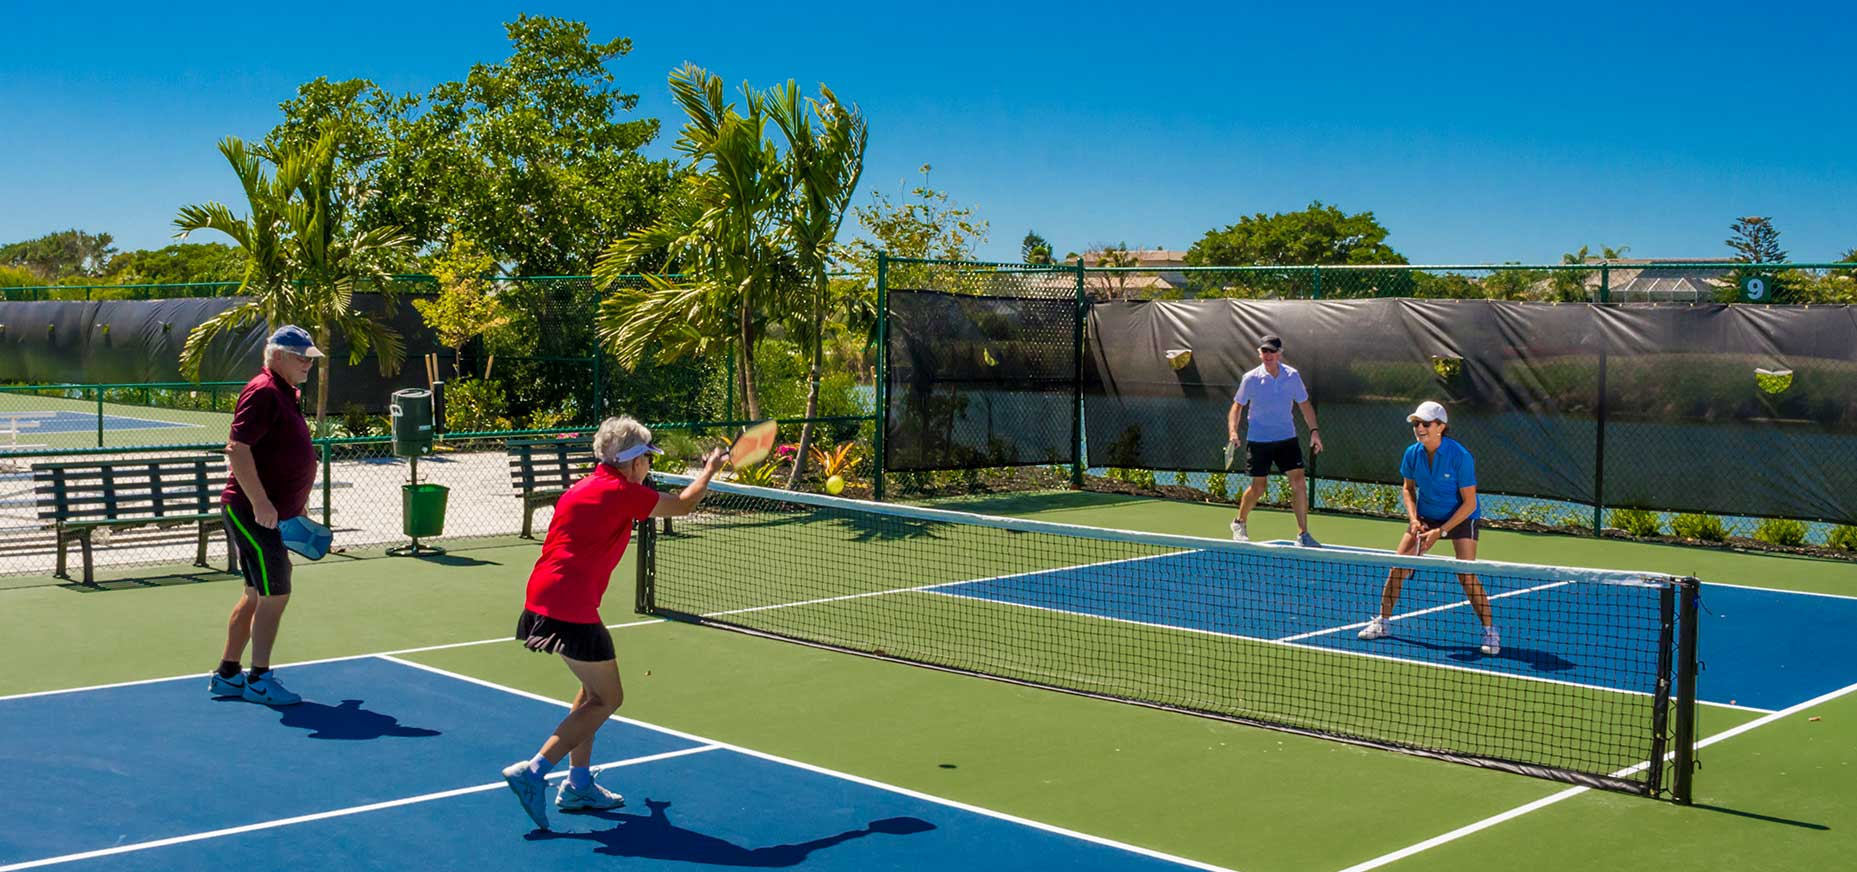 Resort Invites Players to Inaugural Pickleball Tournament